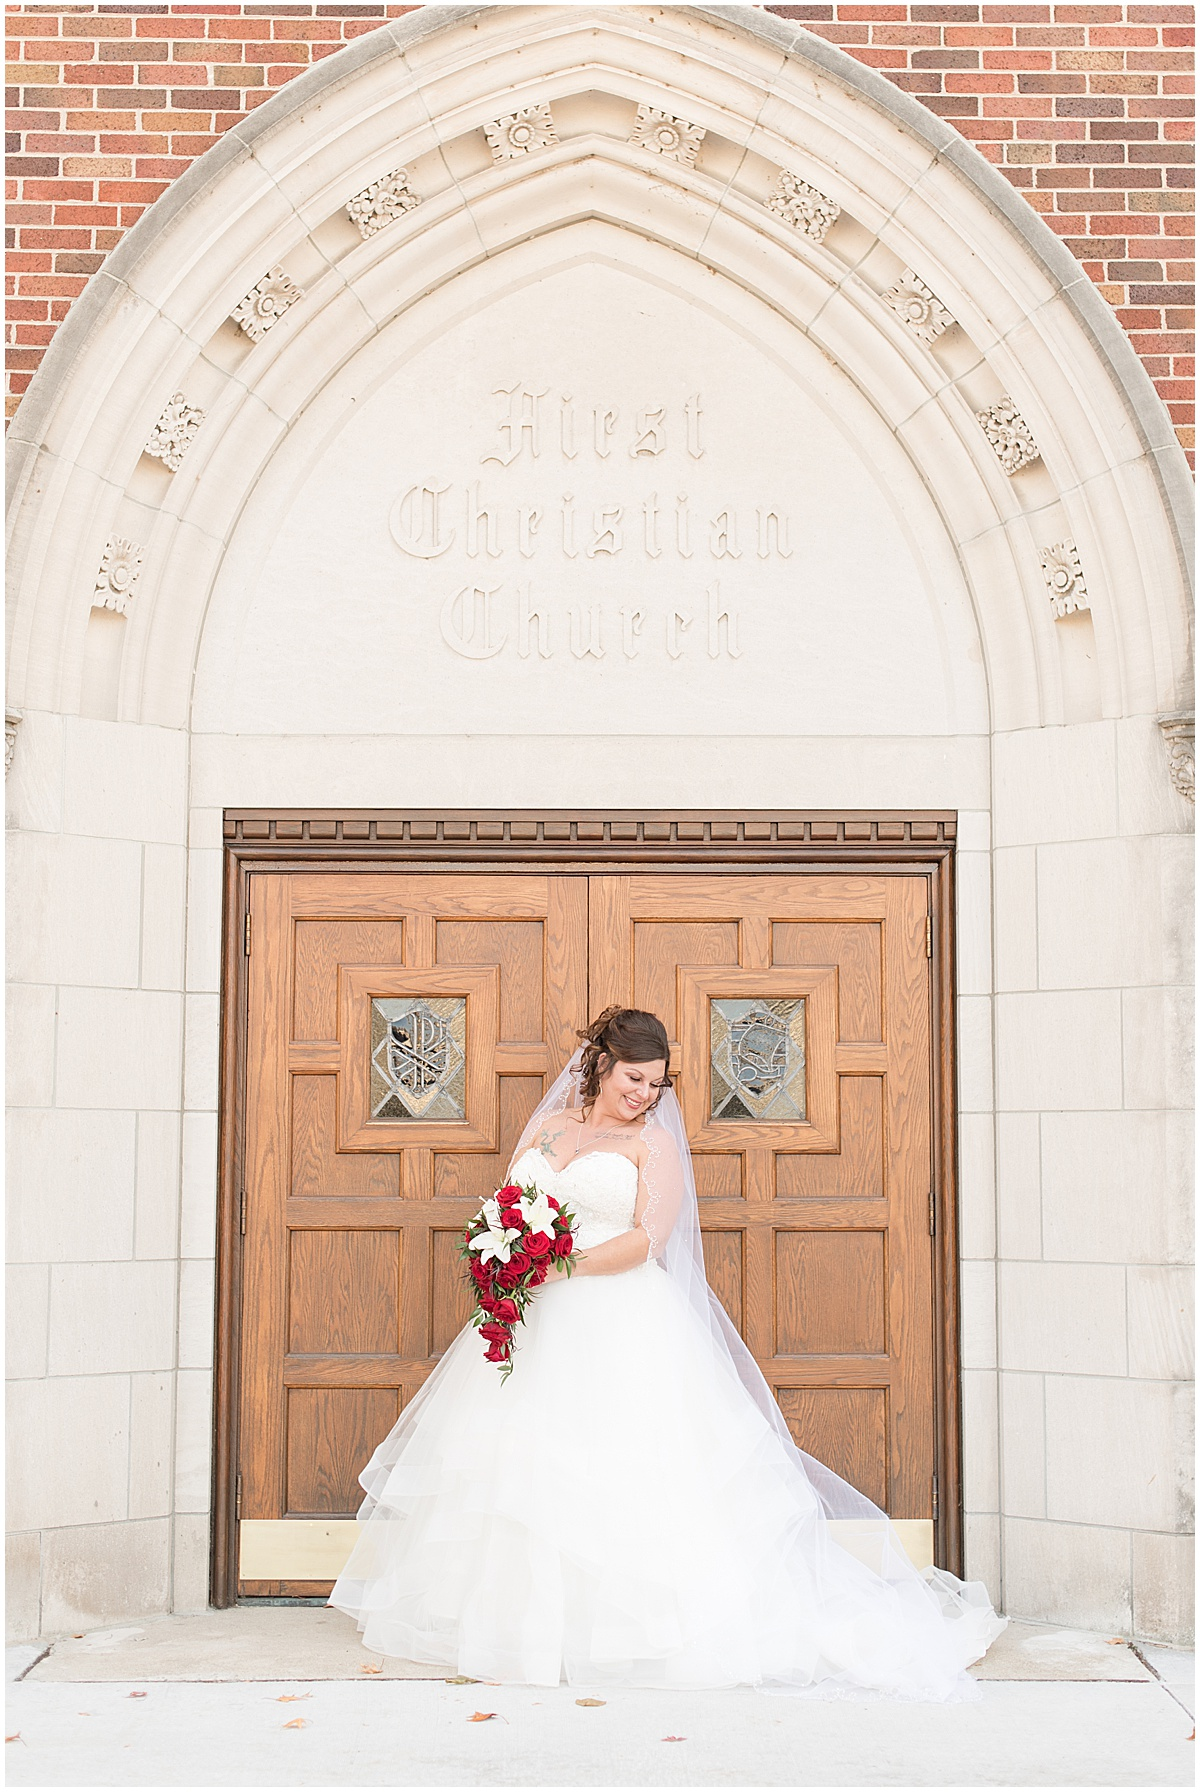 Bride before wedding at Trinity United Methodist Church in Lafayette, Indiana